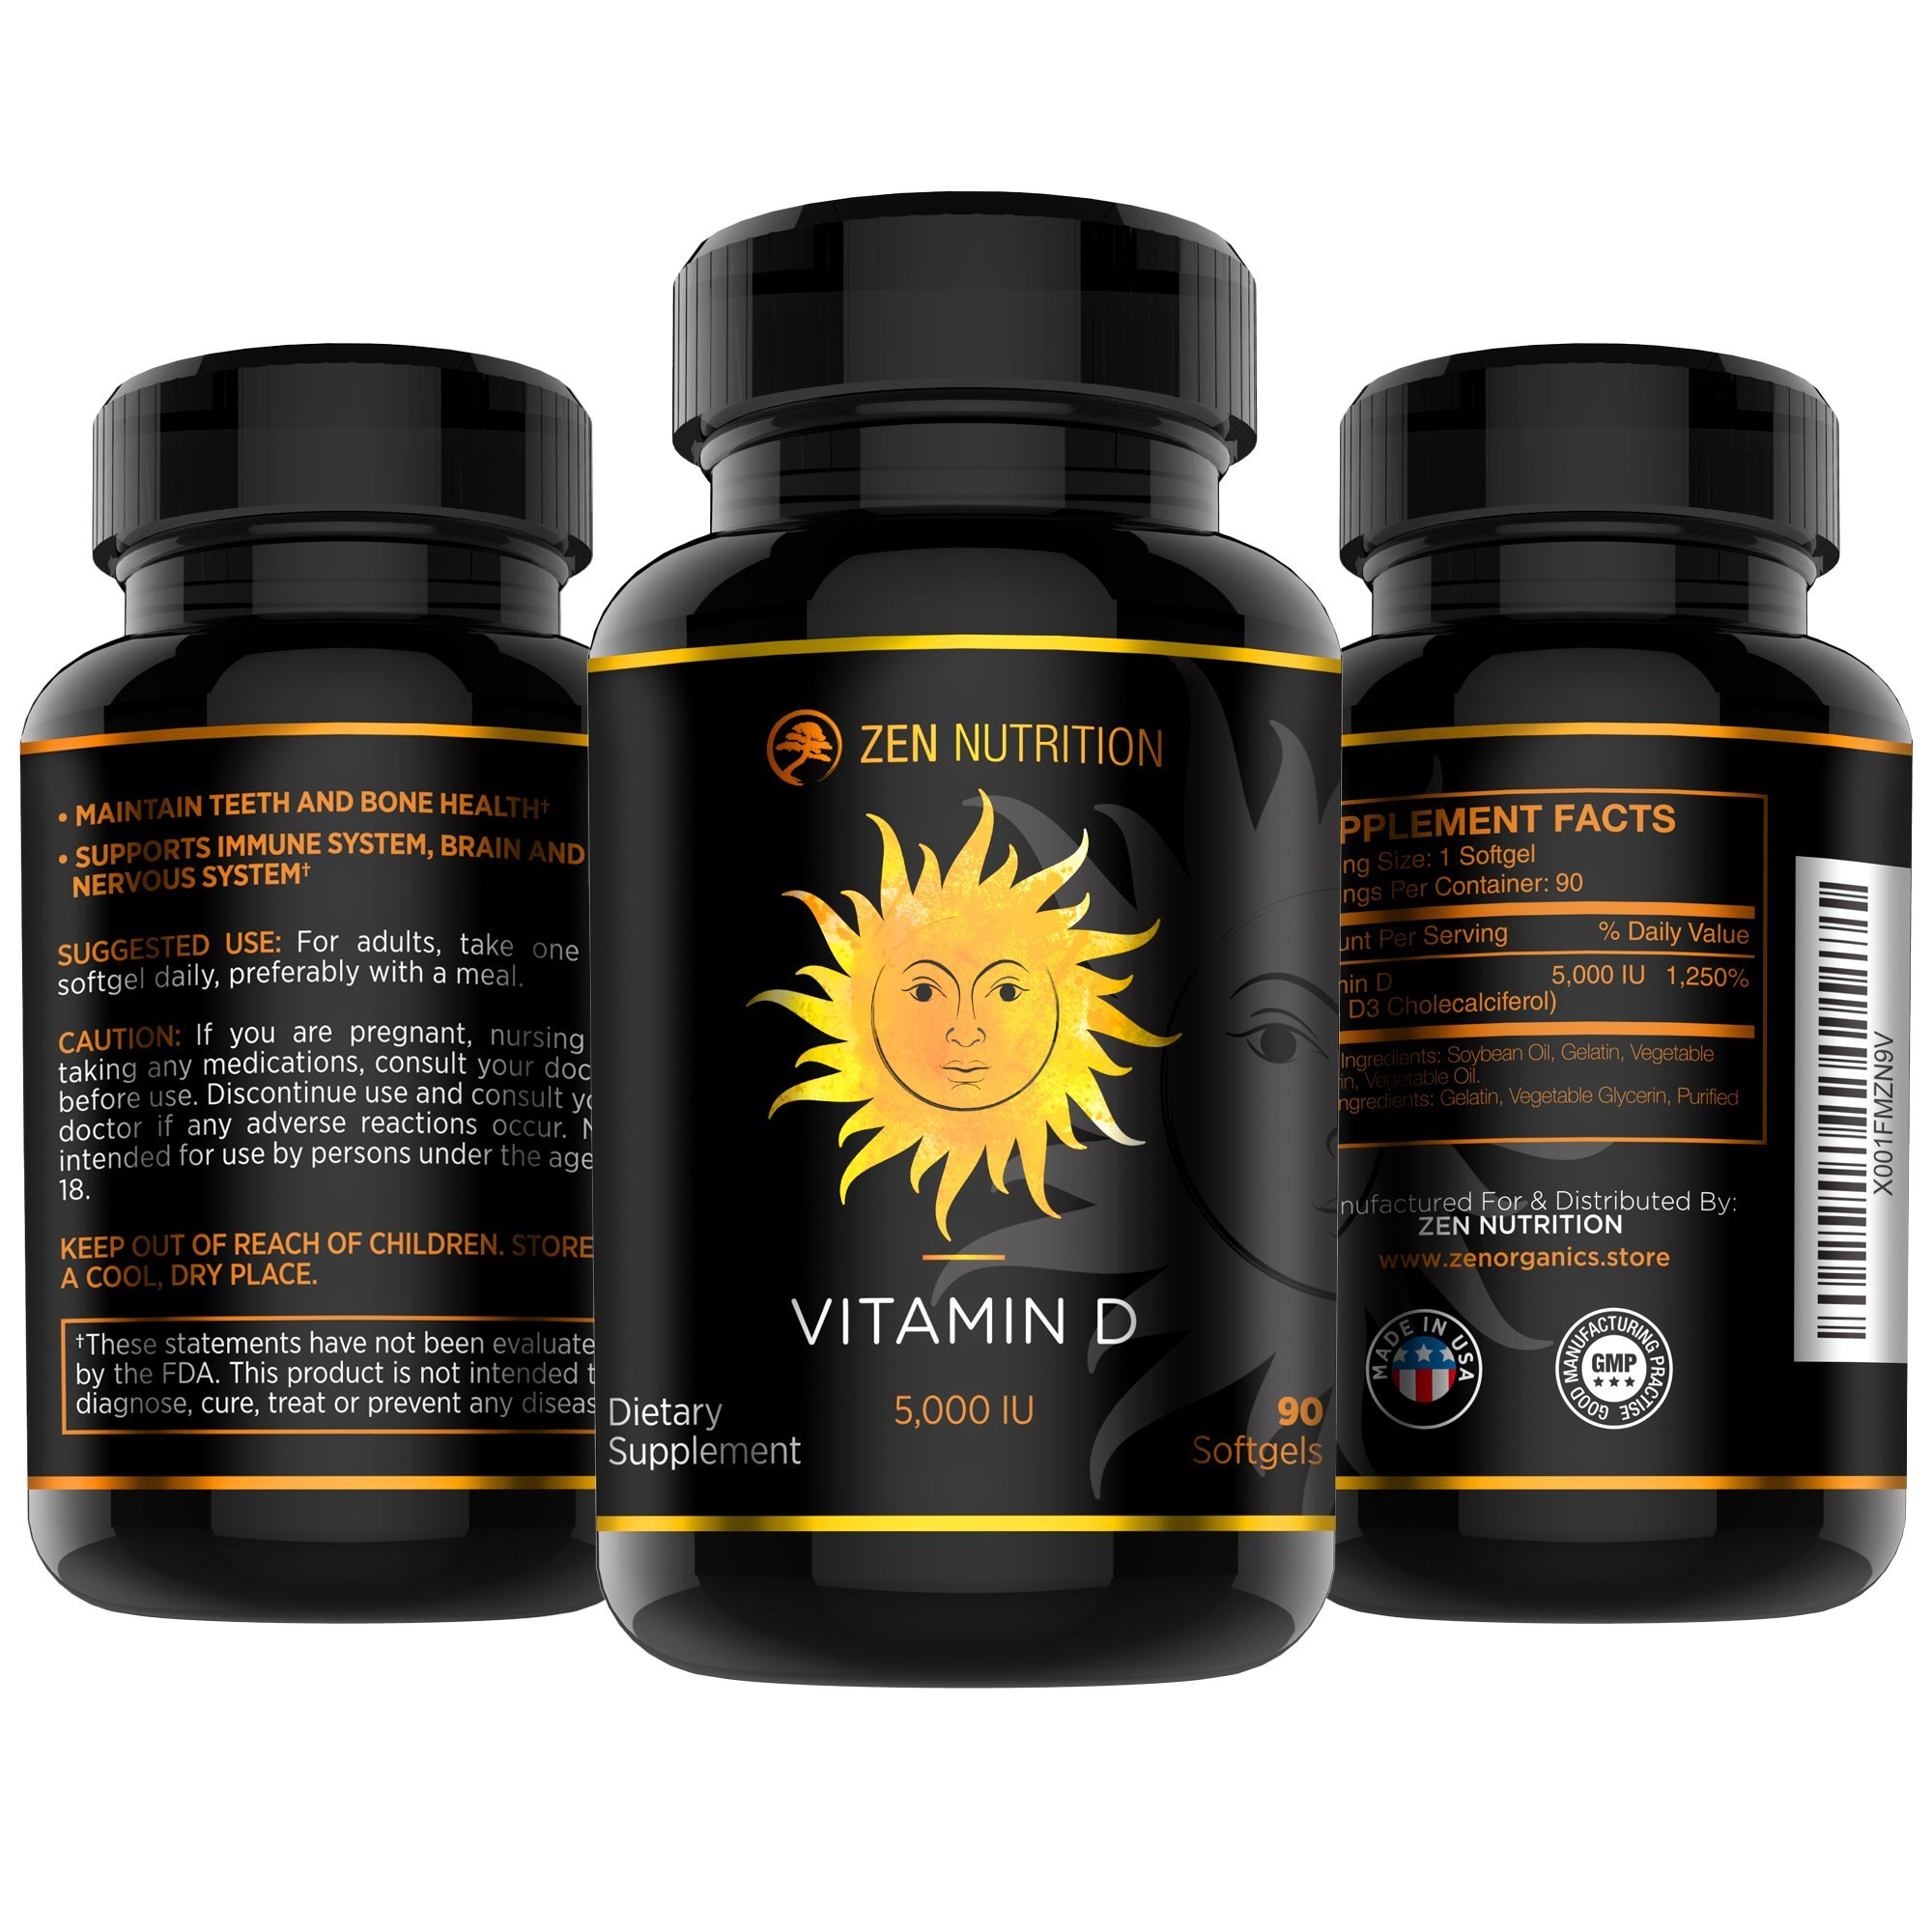 Vitamin D3 Supplement | The Sunshine Vitamin - 5000 IU For Stong Bones, Healty Heart and Immune System | 90 High Potency Softgels By Zen Nutrition